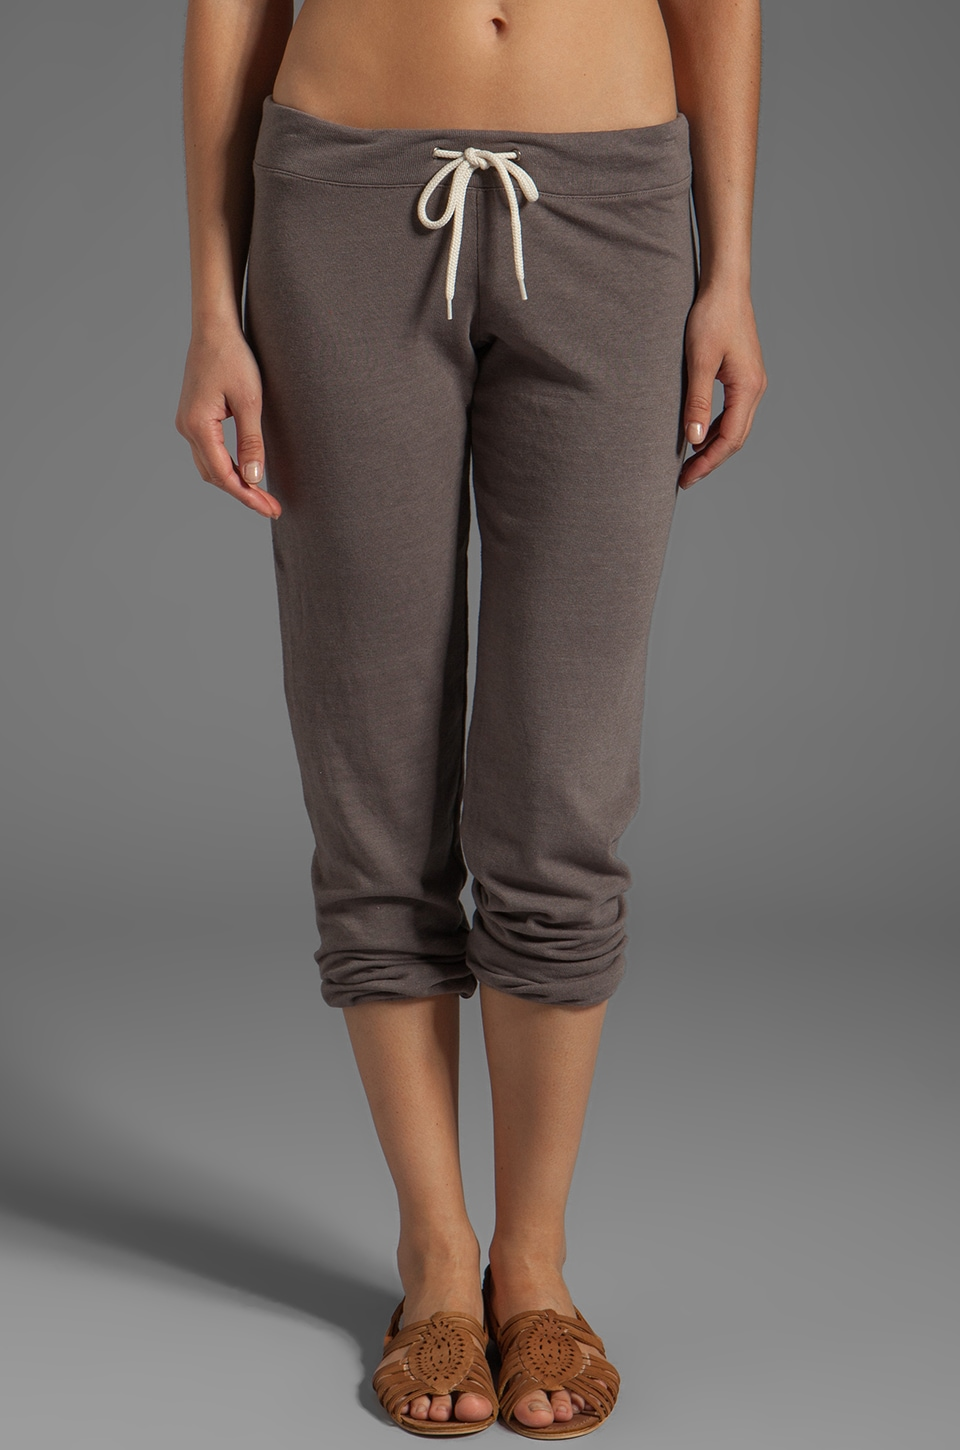 MONROW Vintage White Fleece Sweats en Dusk